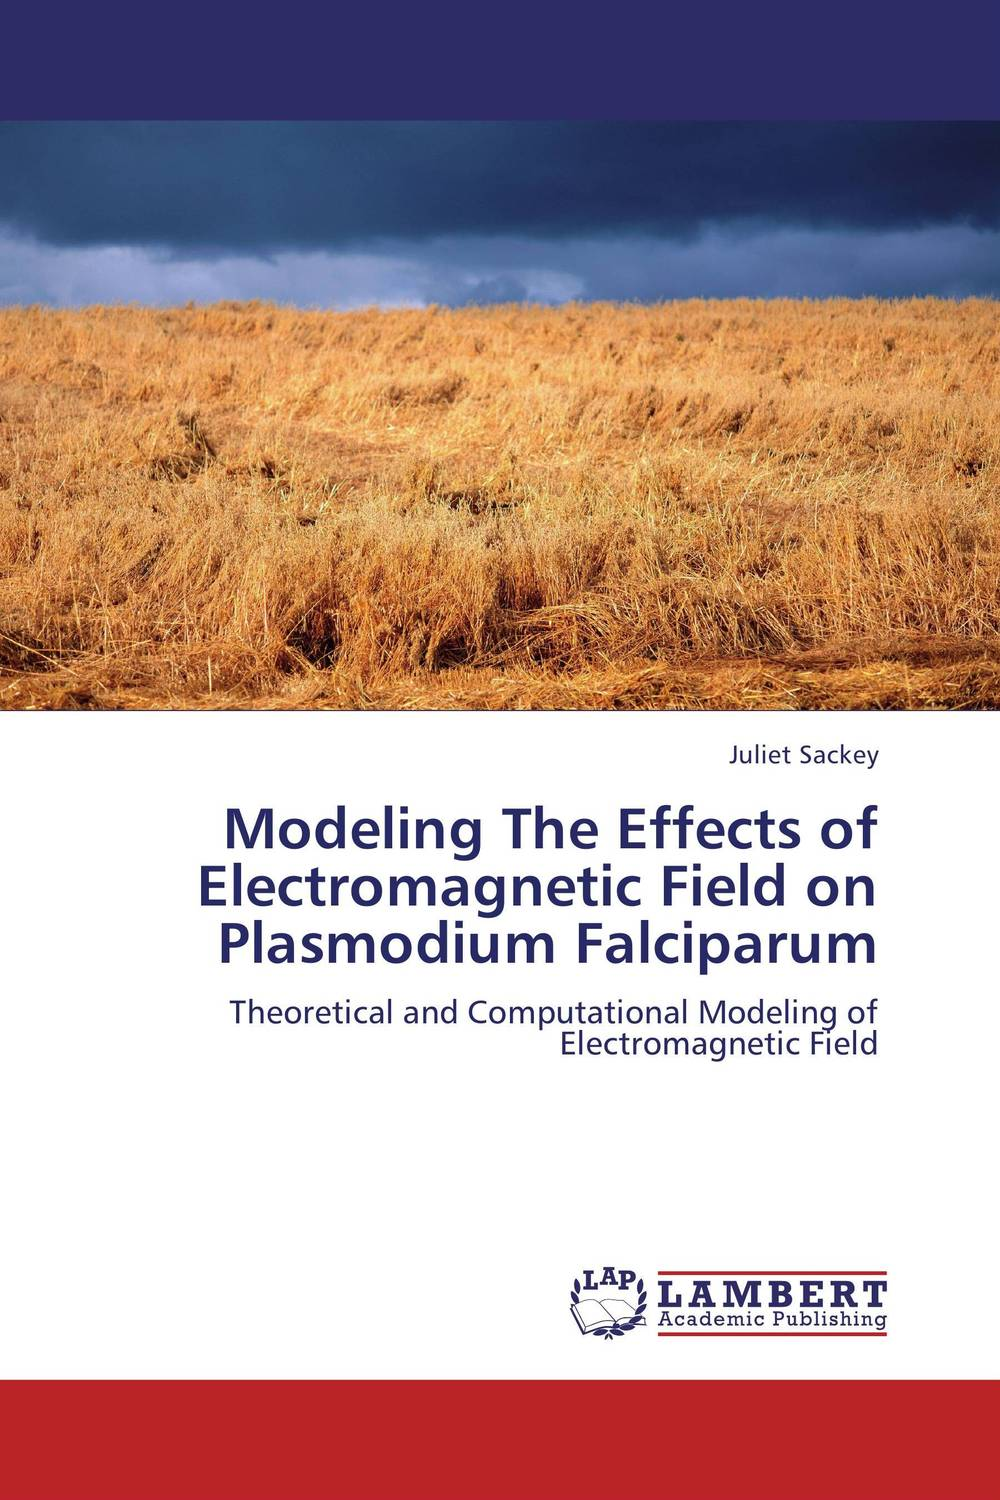 Modeling The Effects of Electromagnetic Field on Plasmodium Falciparum